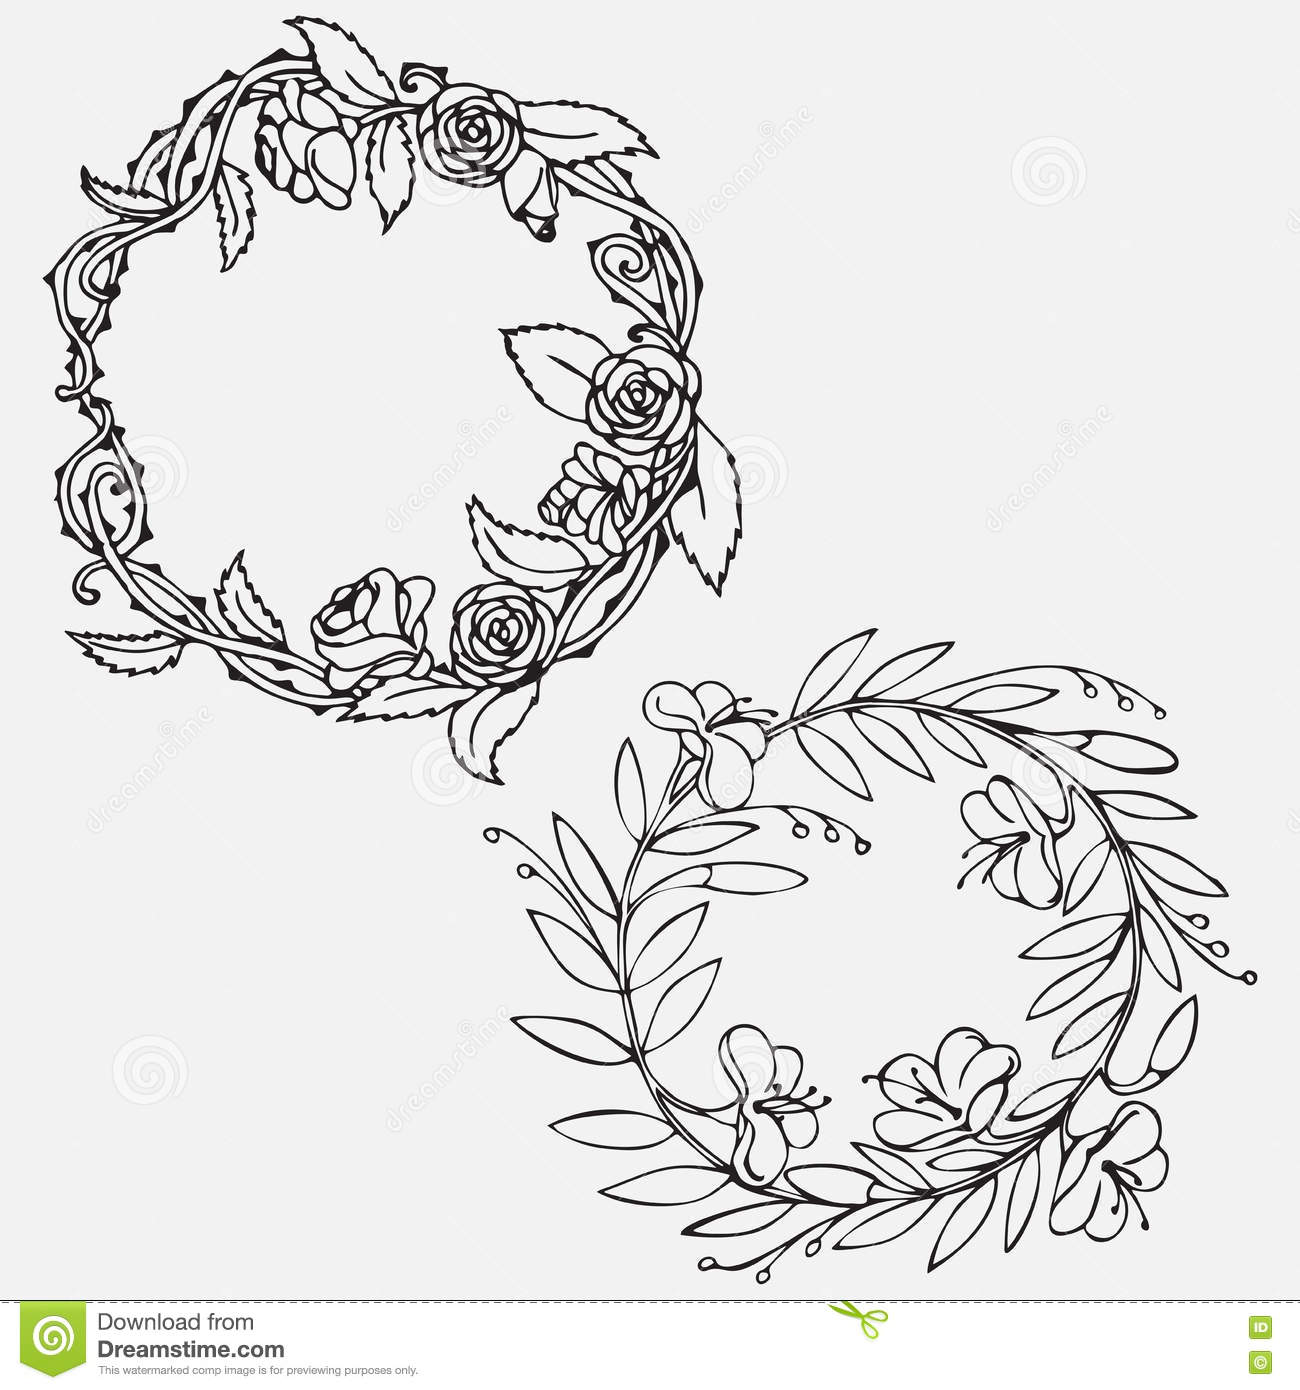 Vintage elements and borders set for ornate and decoration stock - Hand Drawn Vintage Decorative Lovely Set Of Laurels And